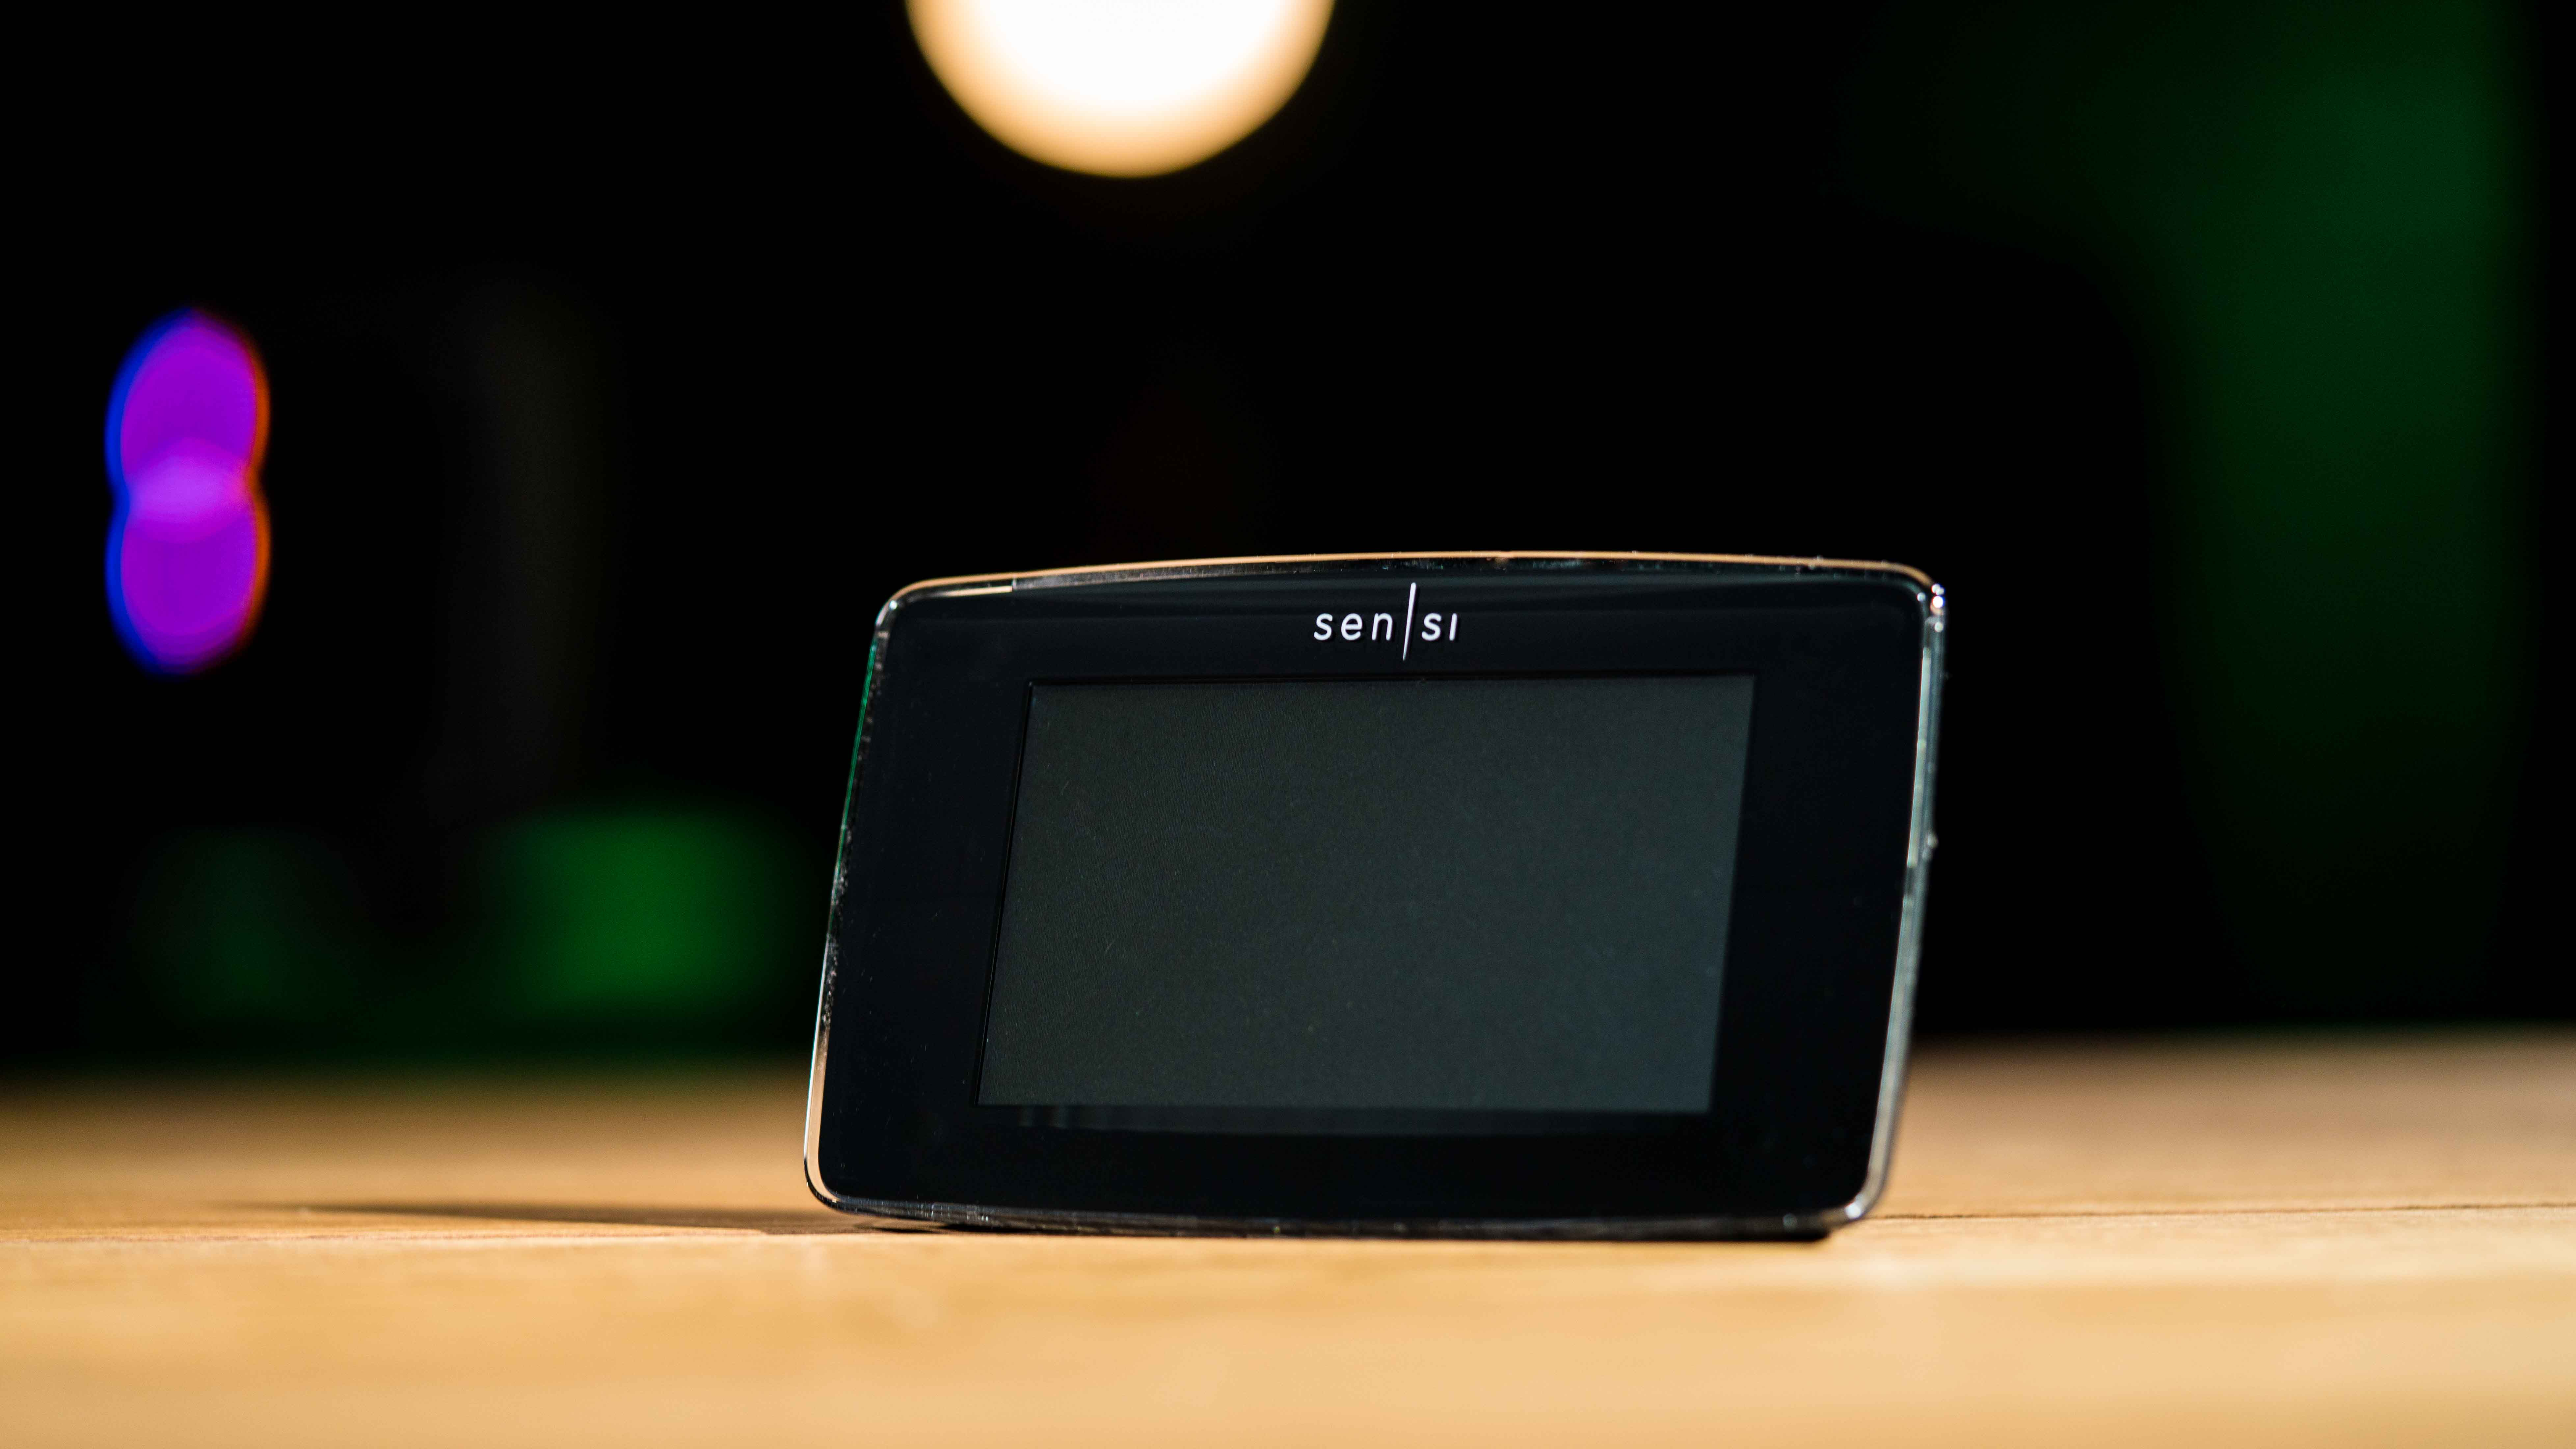 Emerson's Sensi Touch thermostat is a touchscreen update to the previous model.